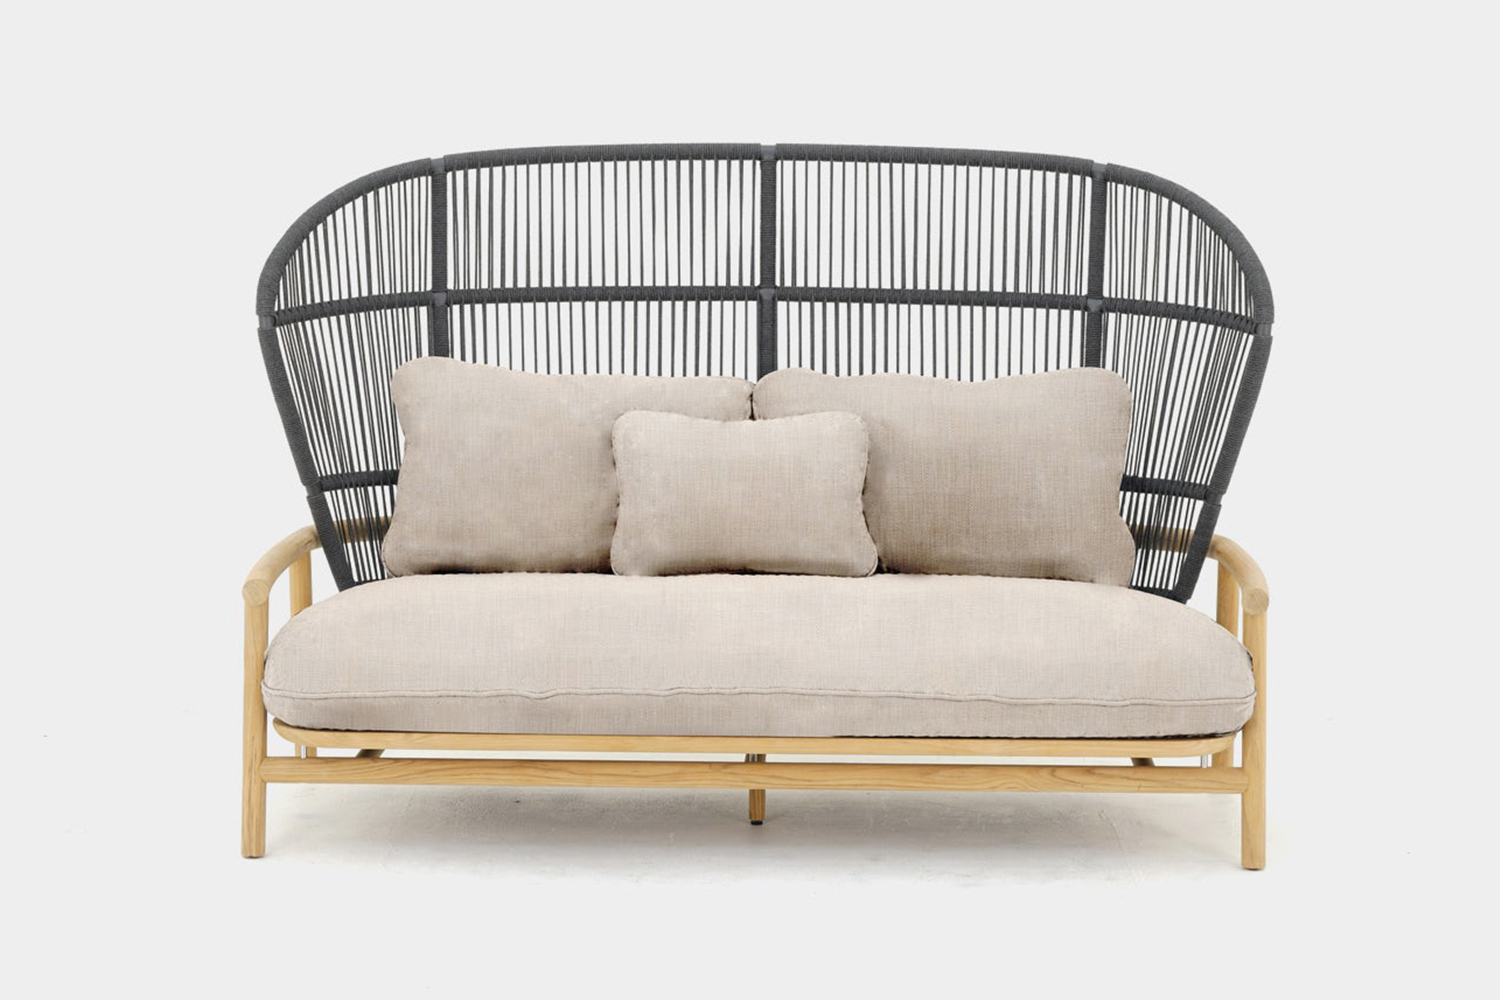 Fern Sofa from Design Within Reach